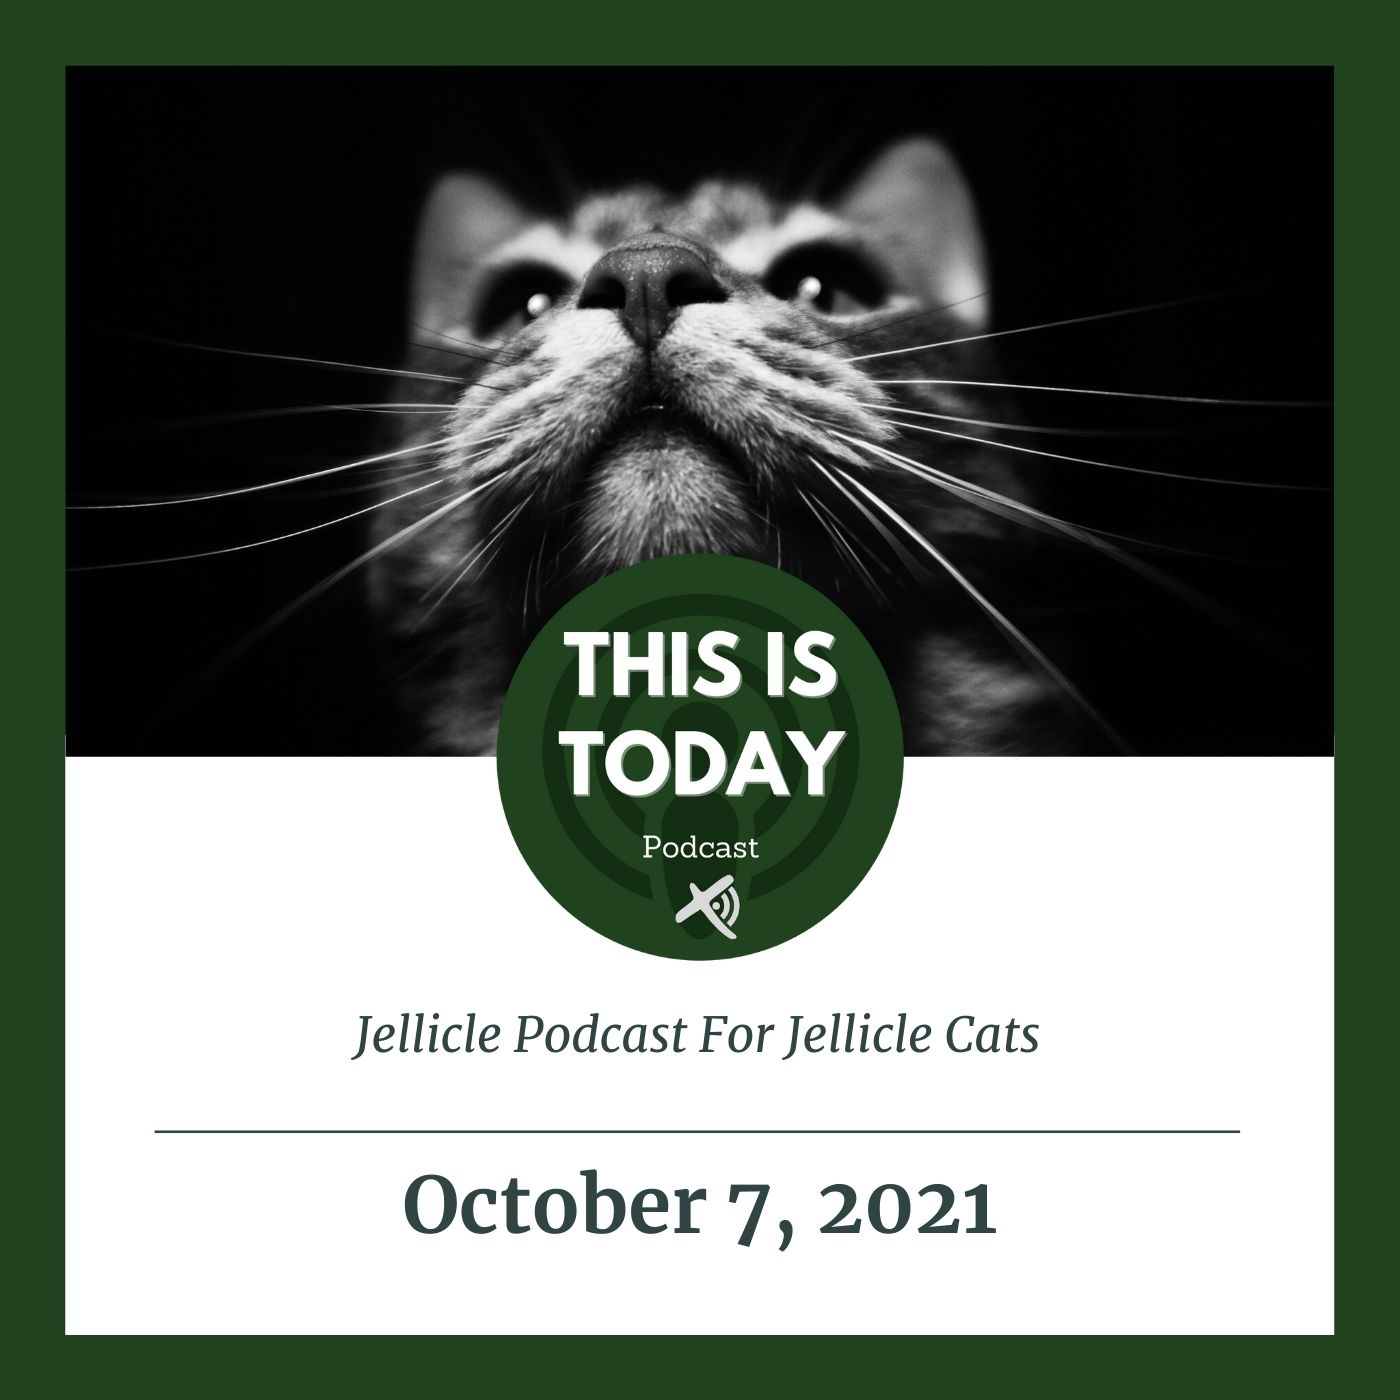 Jellicle Podcast For Jellicle Cats